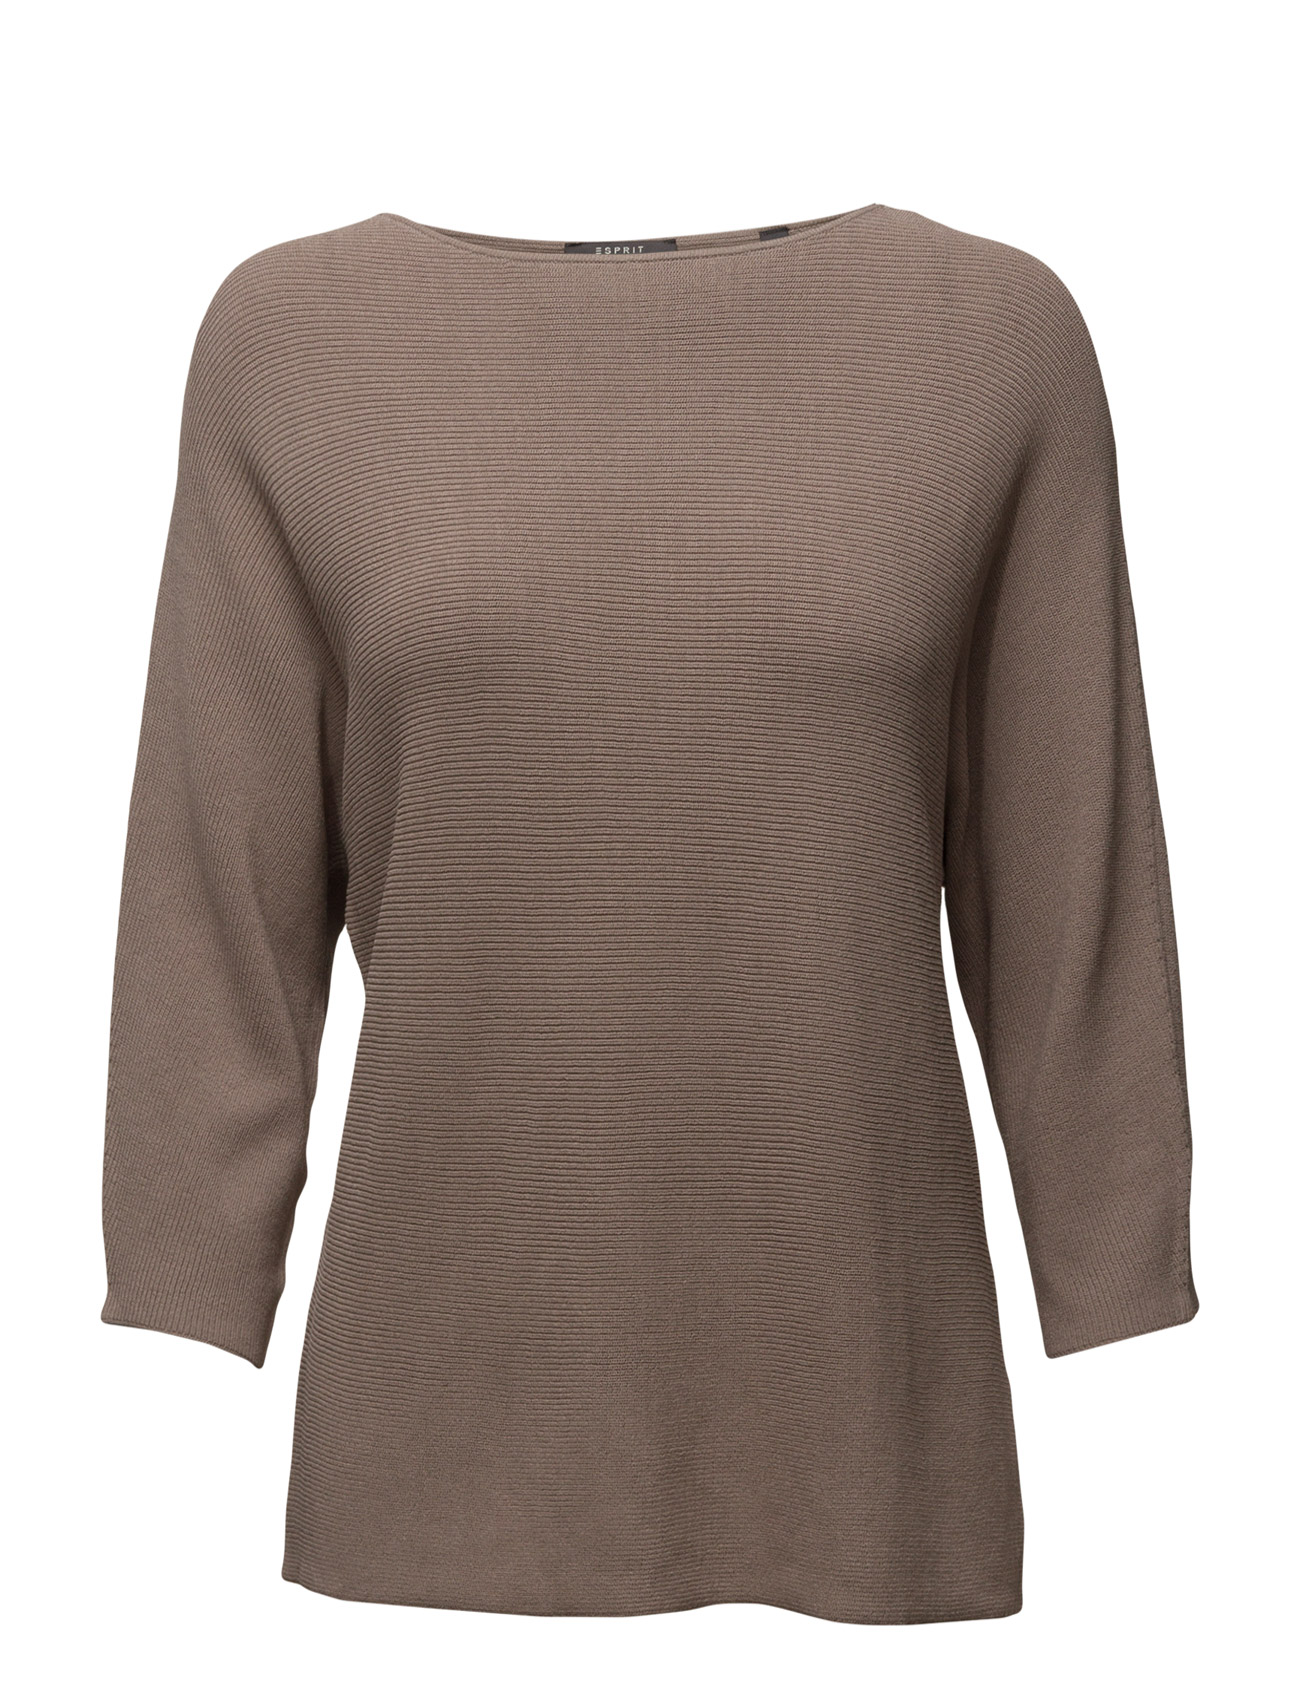 Sweaters Esprit Collection Striktøj til Kvinder i Taupe